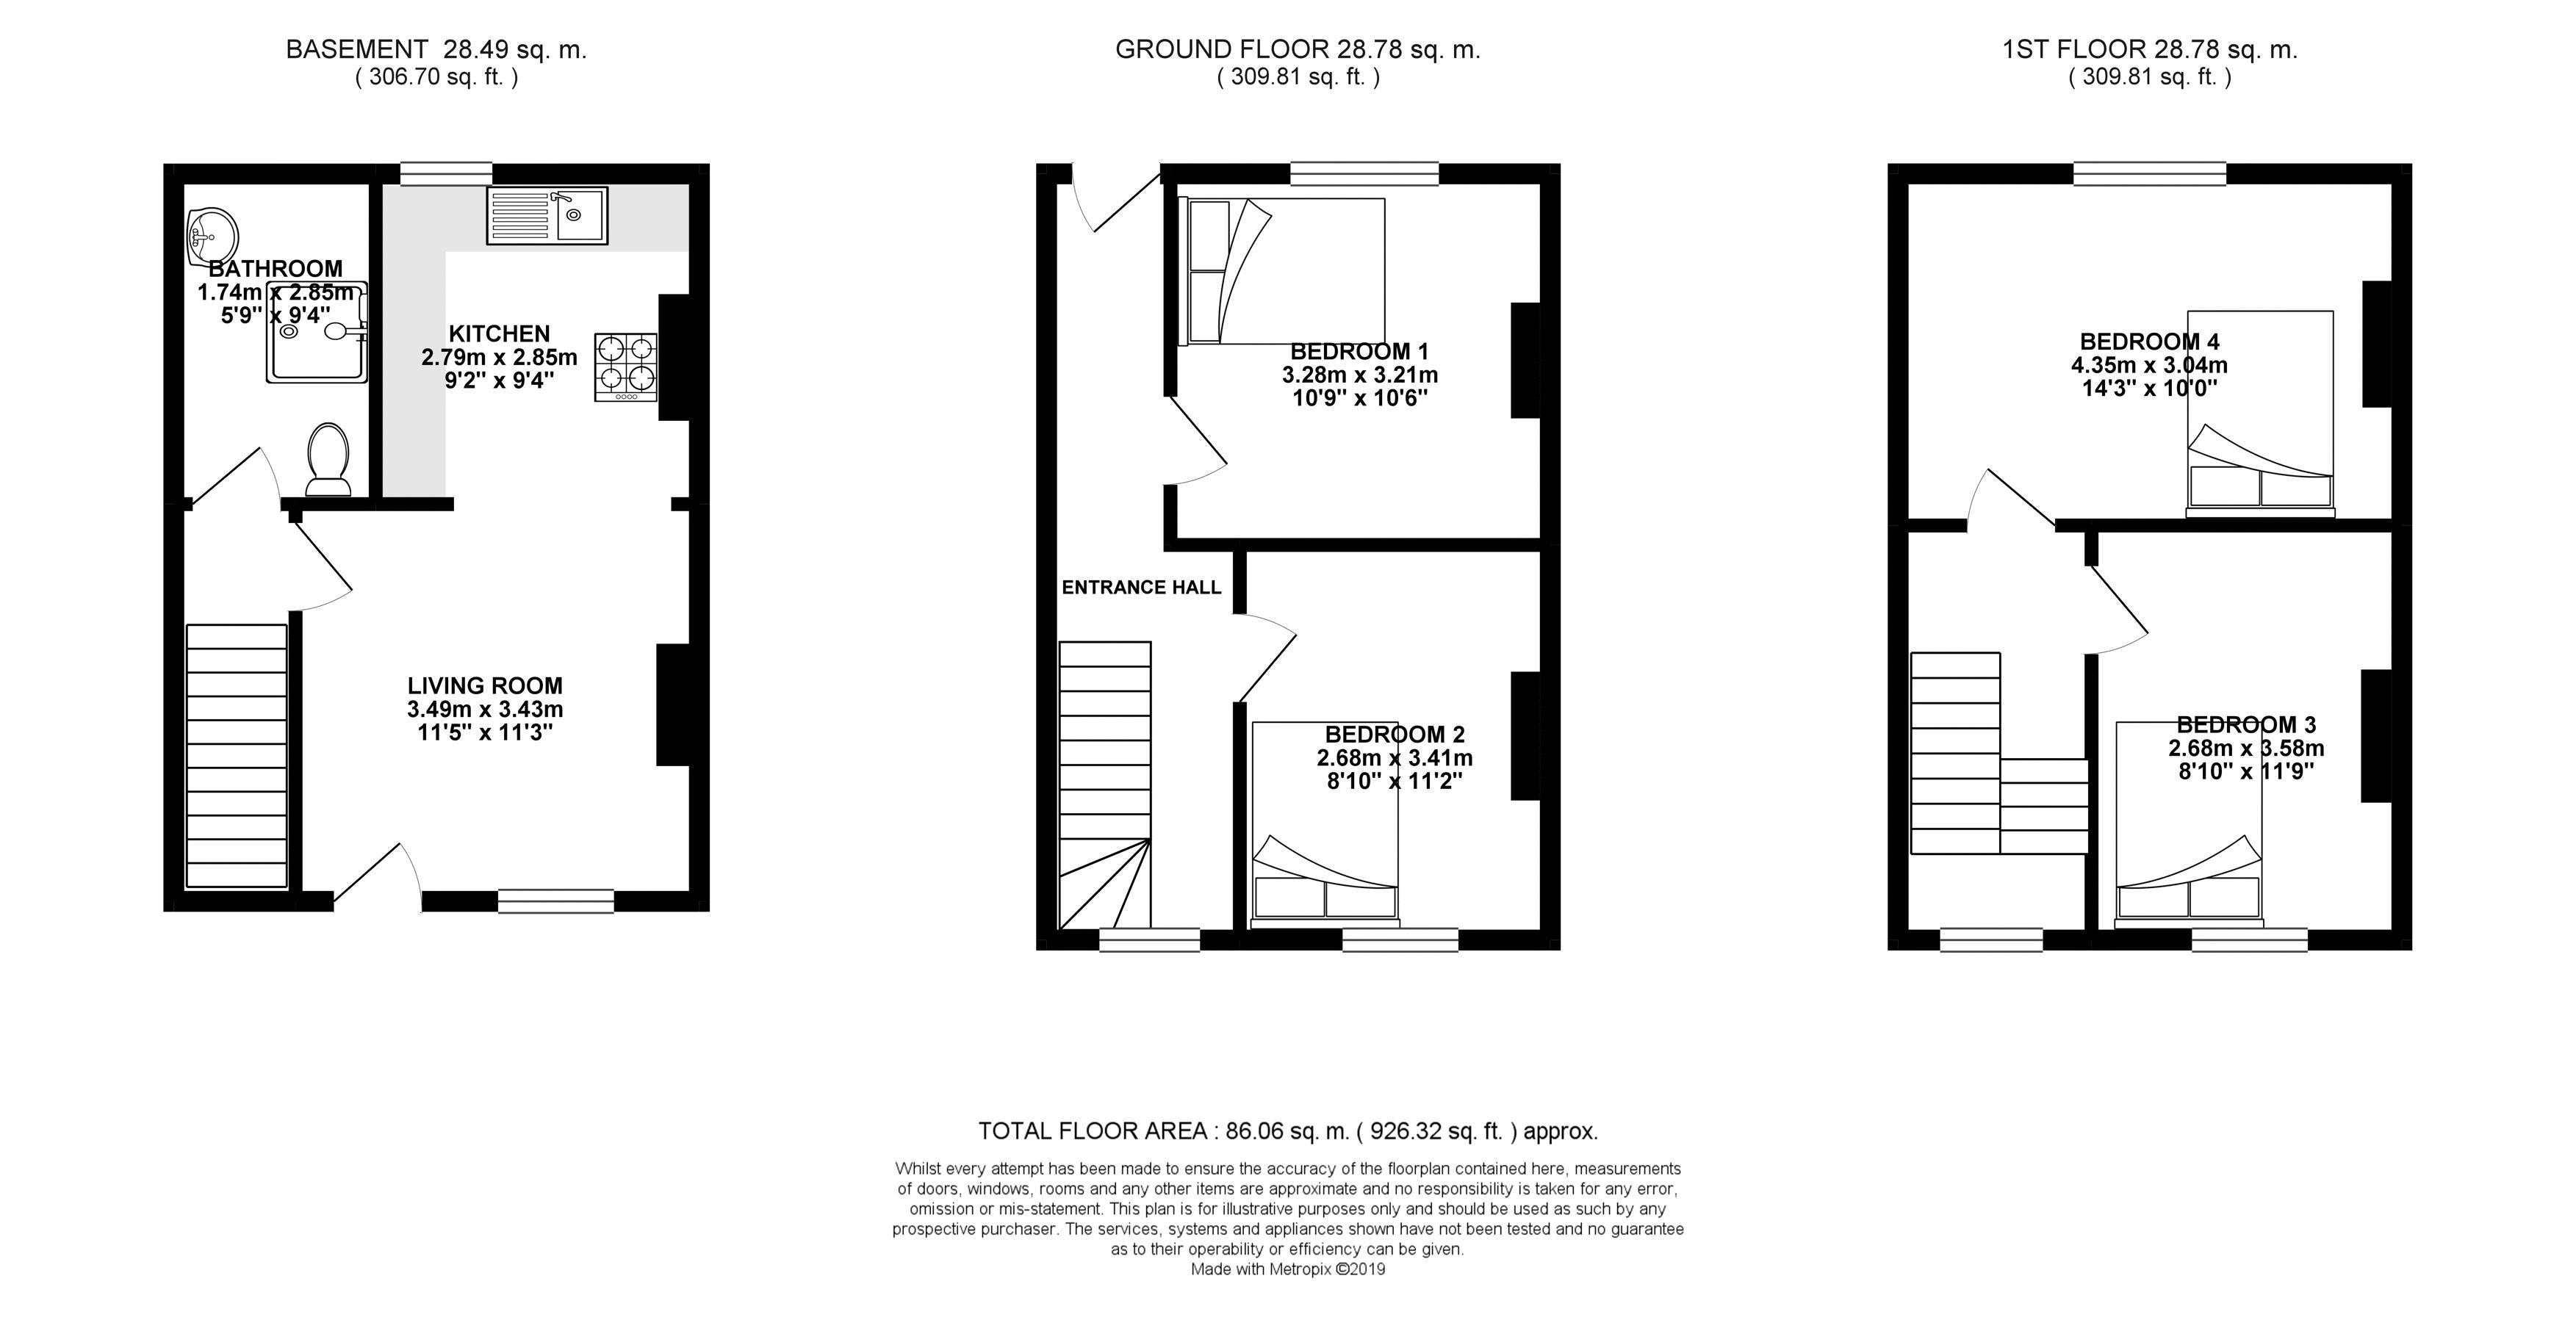 Floor plans for St. Mary Magdalene Street, Brighton property for sale in Lewes Road South, Brighton by Coapt